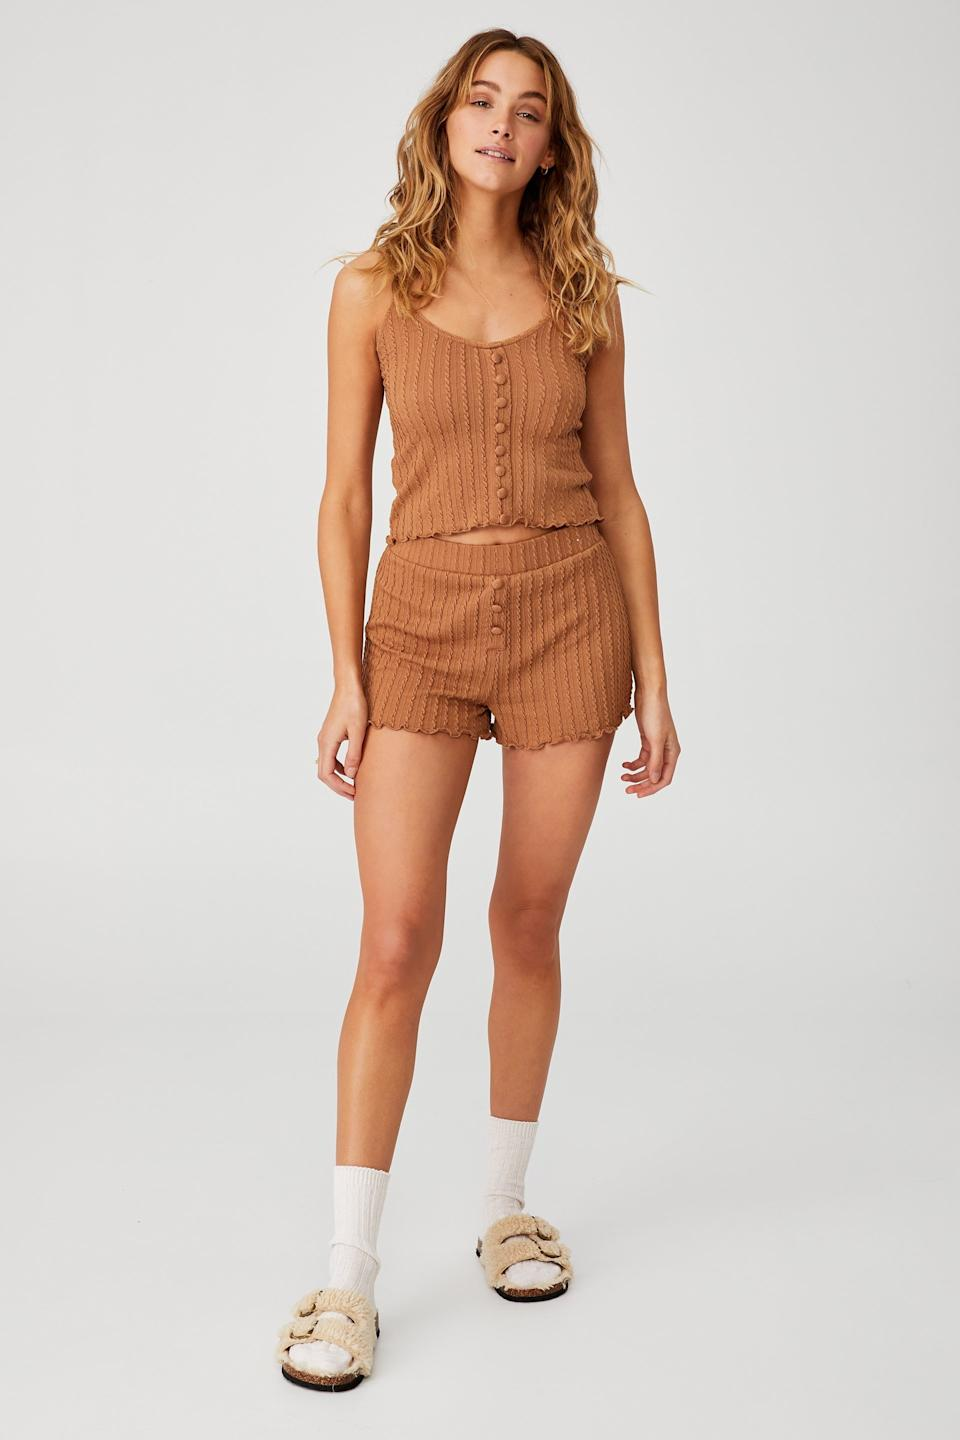 Knit Bed Tank, $17.49 and Knit Bed Shorts, $17.49